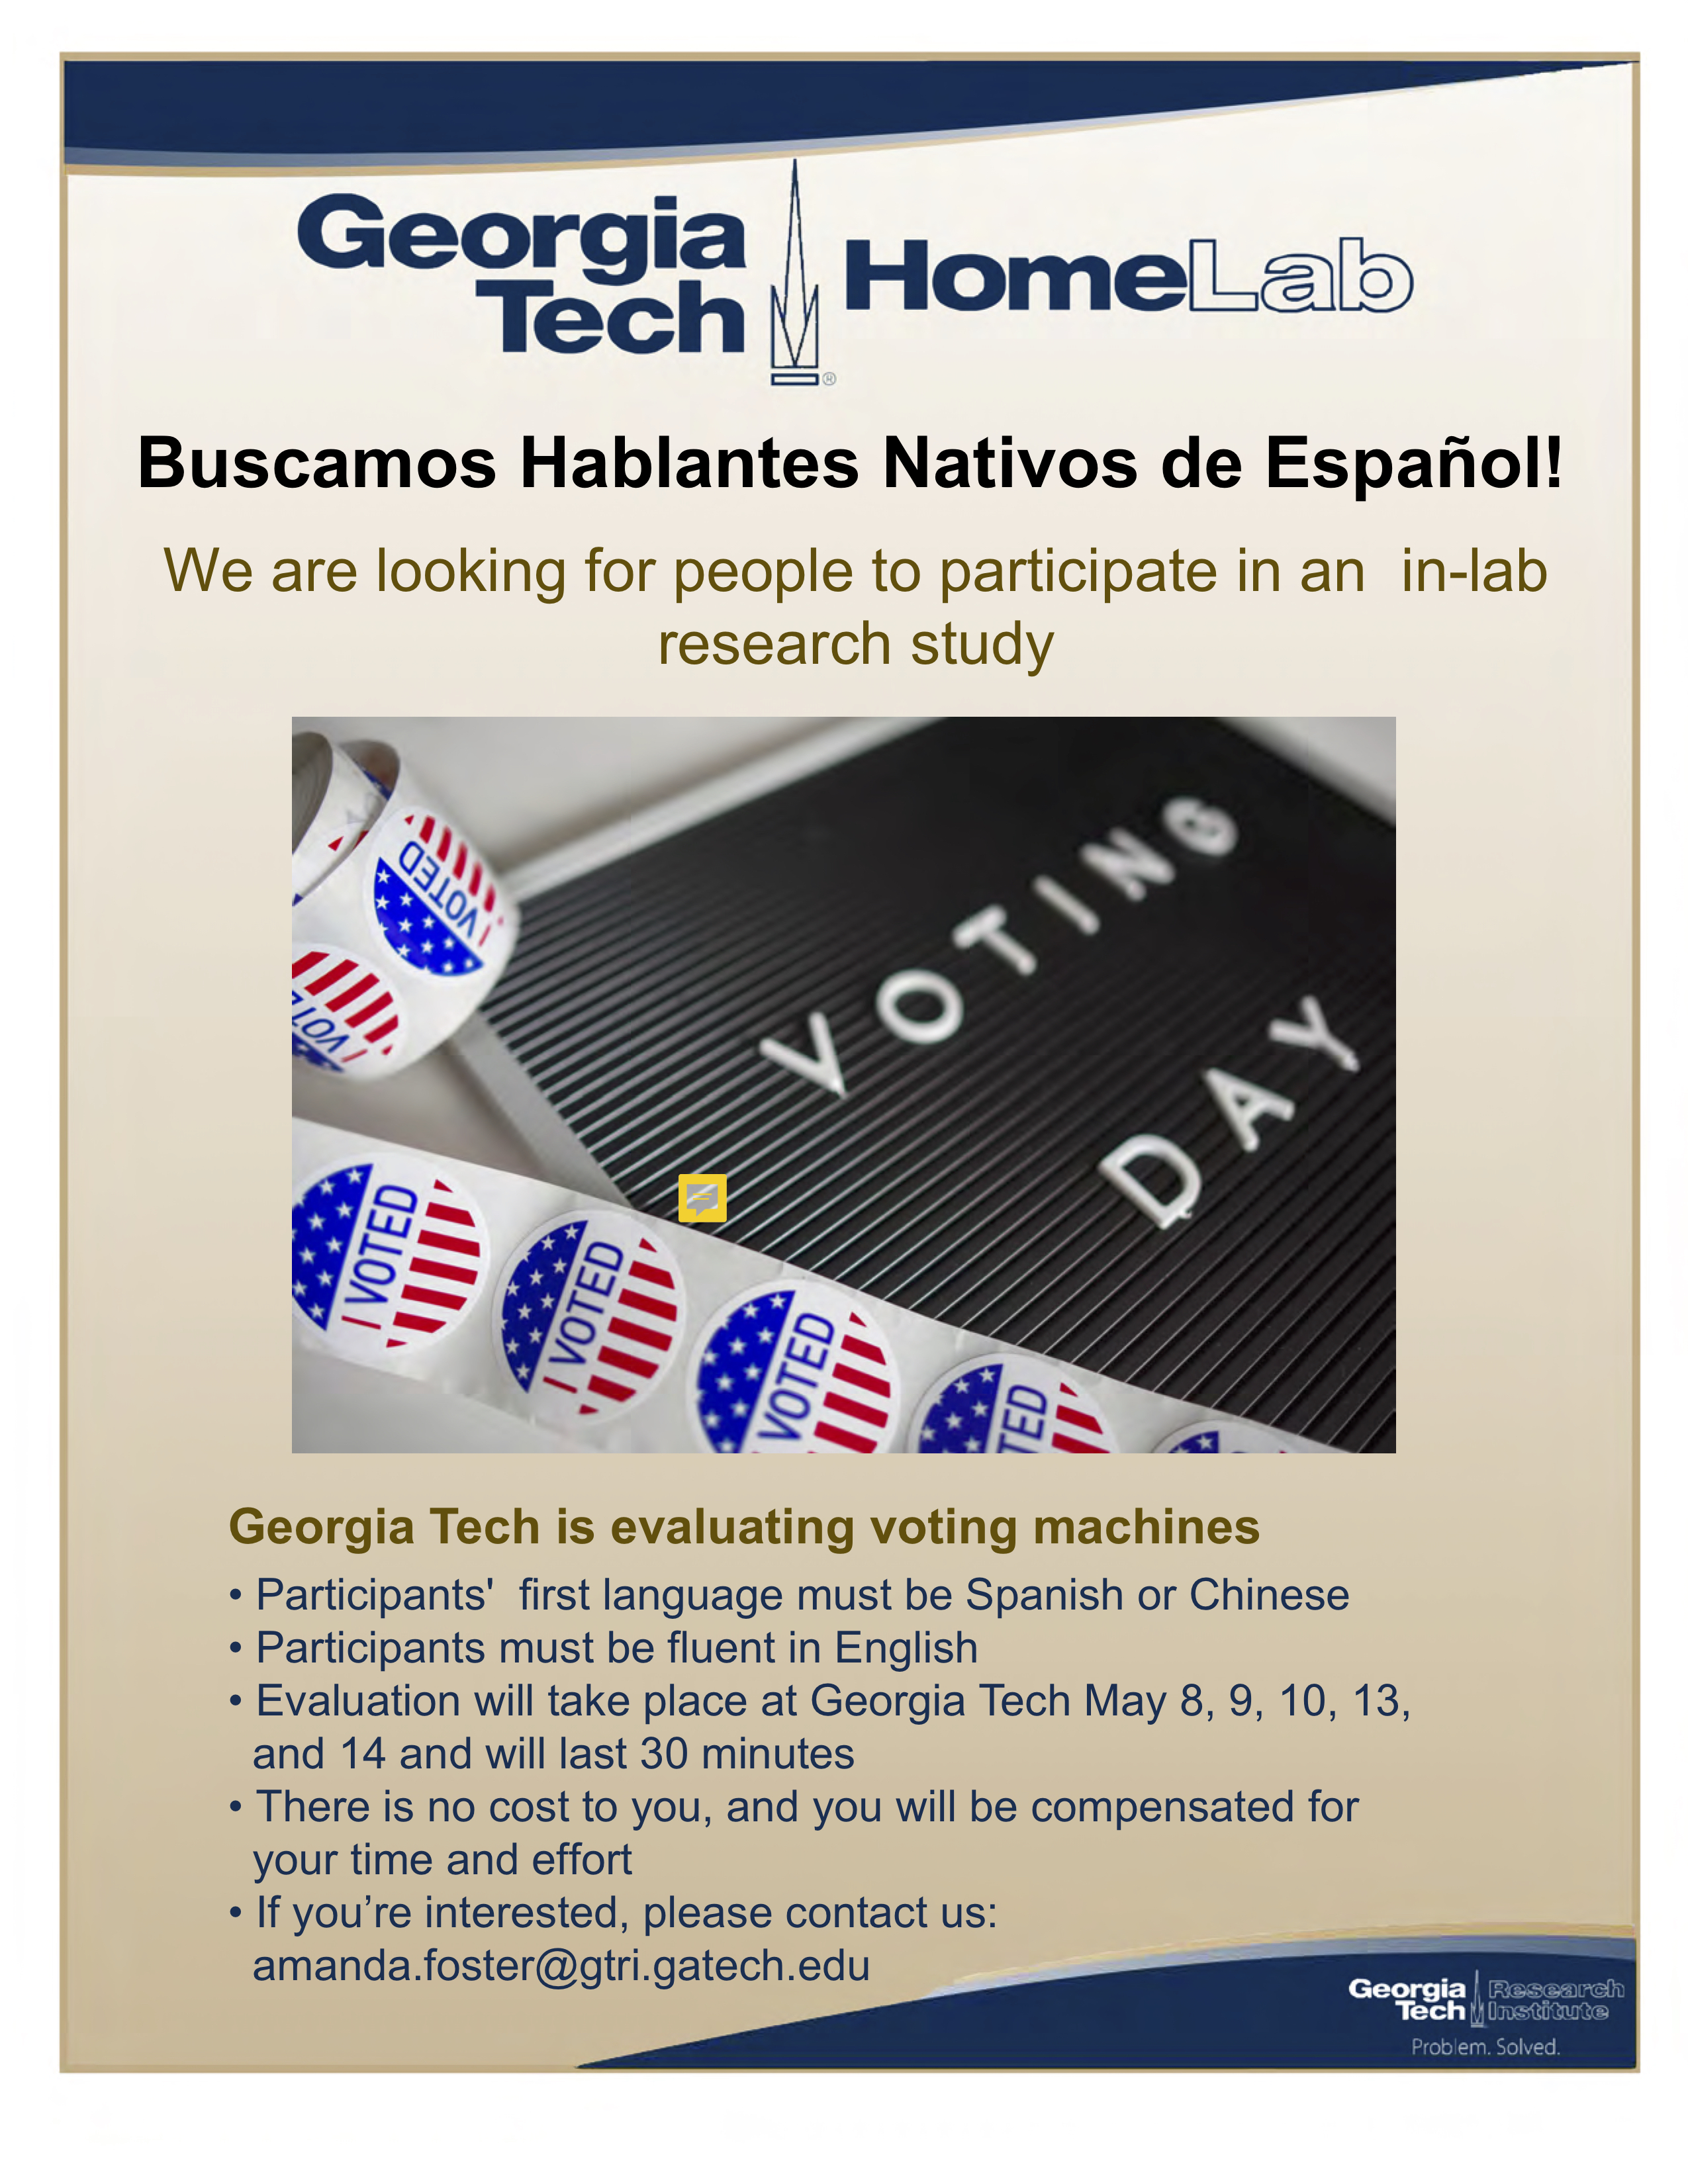 Buscamos Hablantes Nativos de Español! We are looking for people to participate in an in-lab research study  Georgia Tech is evaluating voting machines • Participants' first language must be Spanish or Chinese • Participants must be fluent in English • Evaluation will take place at Georgia Tech May 8, 9, 10, 13, and 14 and will last 30 minutes • There is no cost to you, and you will be compensated for your time and effort • If you're interested, please contact us: amanda.foster@gtri.gatech.edu